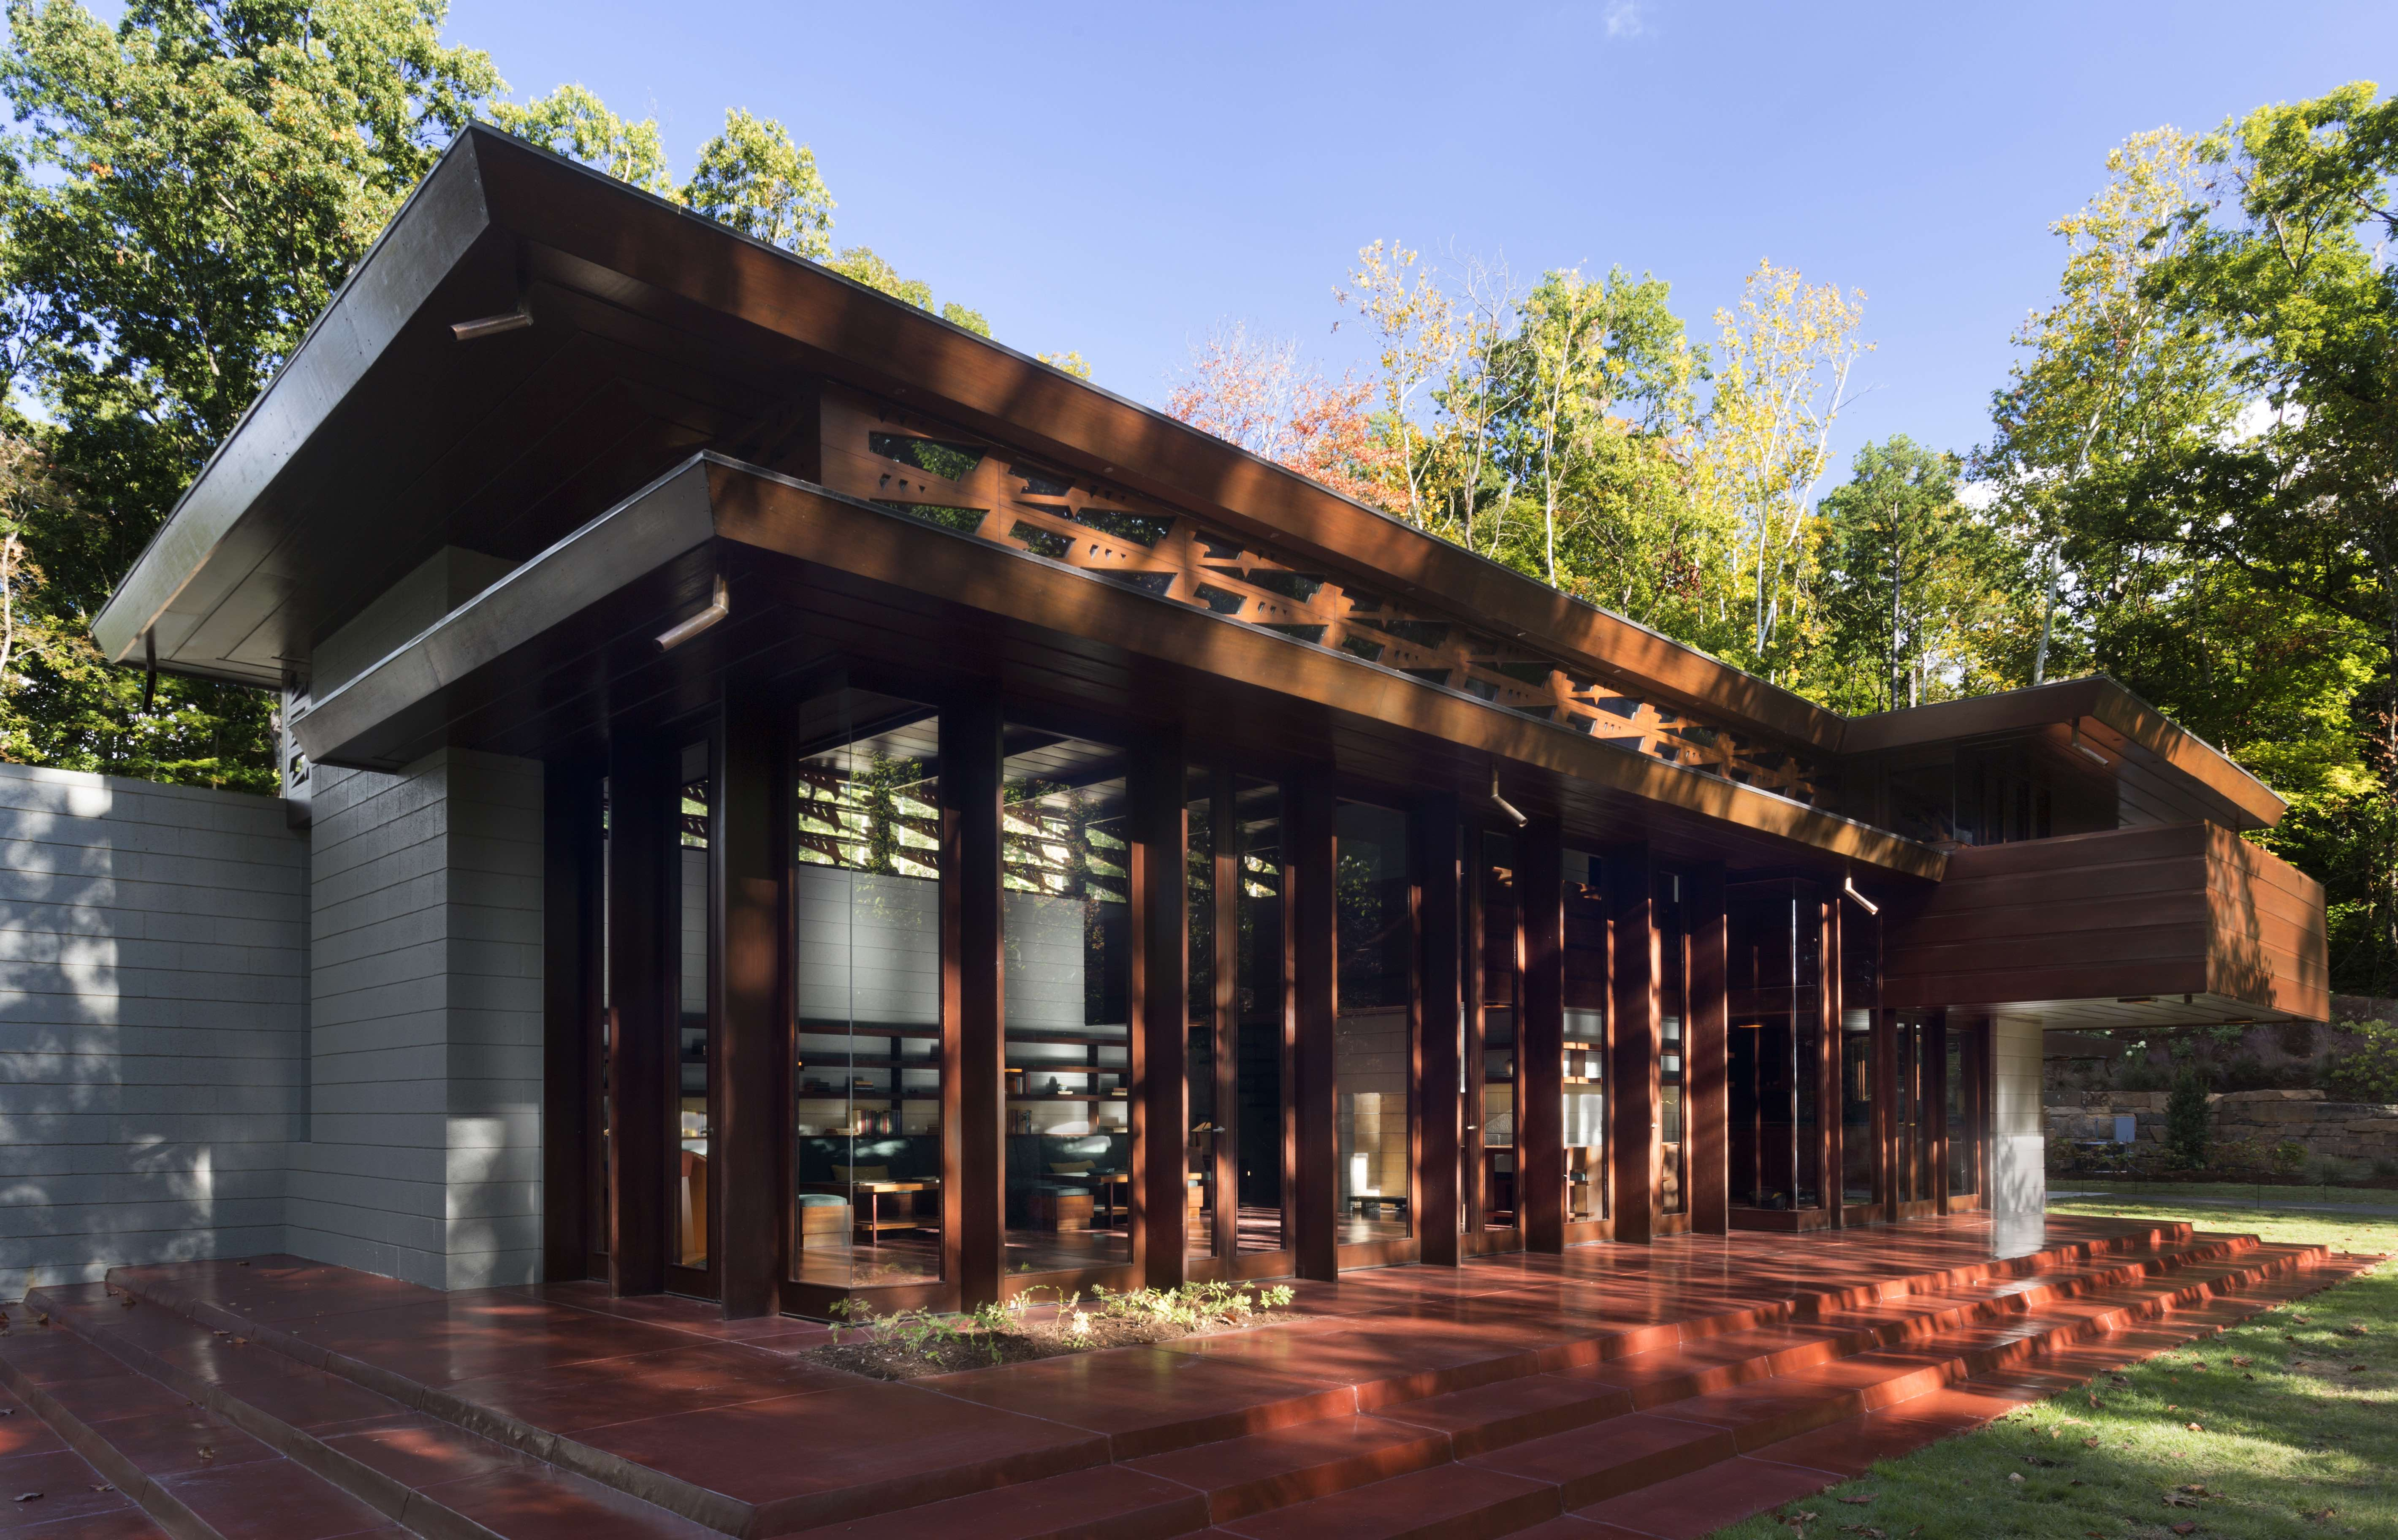 Museum unveils frank lloyd wright house for Architecture frank lloyd wright